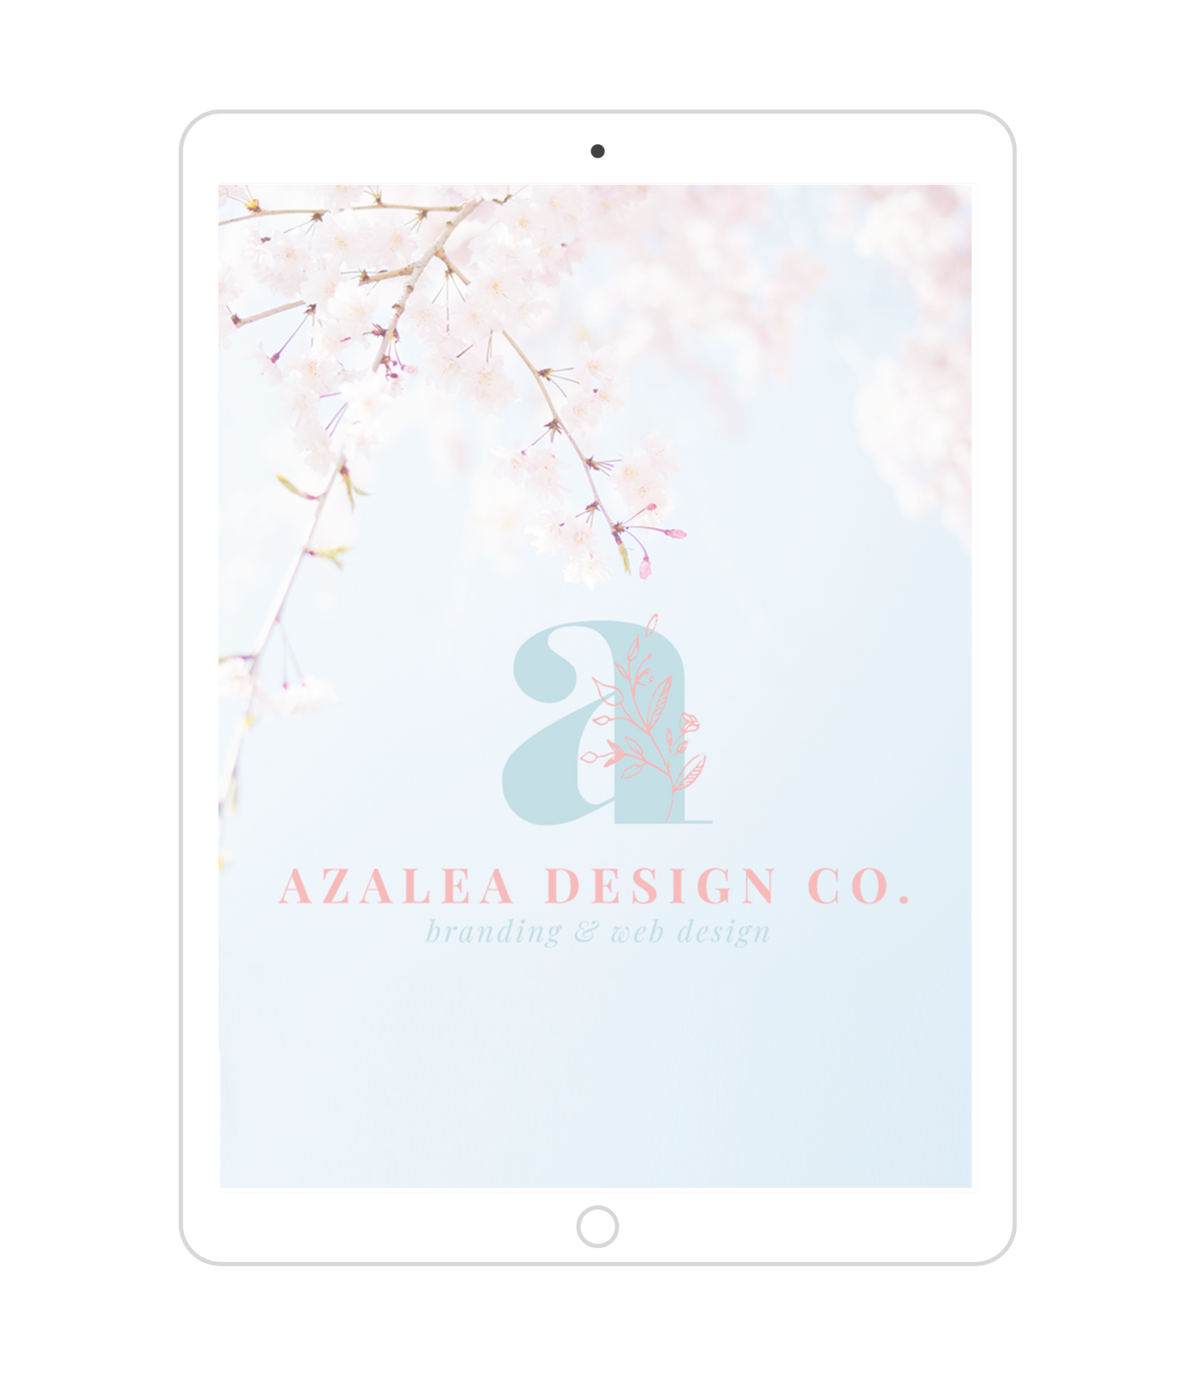 Azalea Design Co Branding